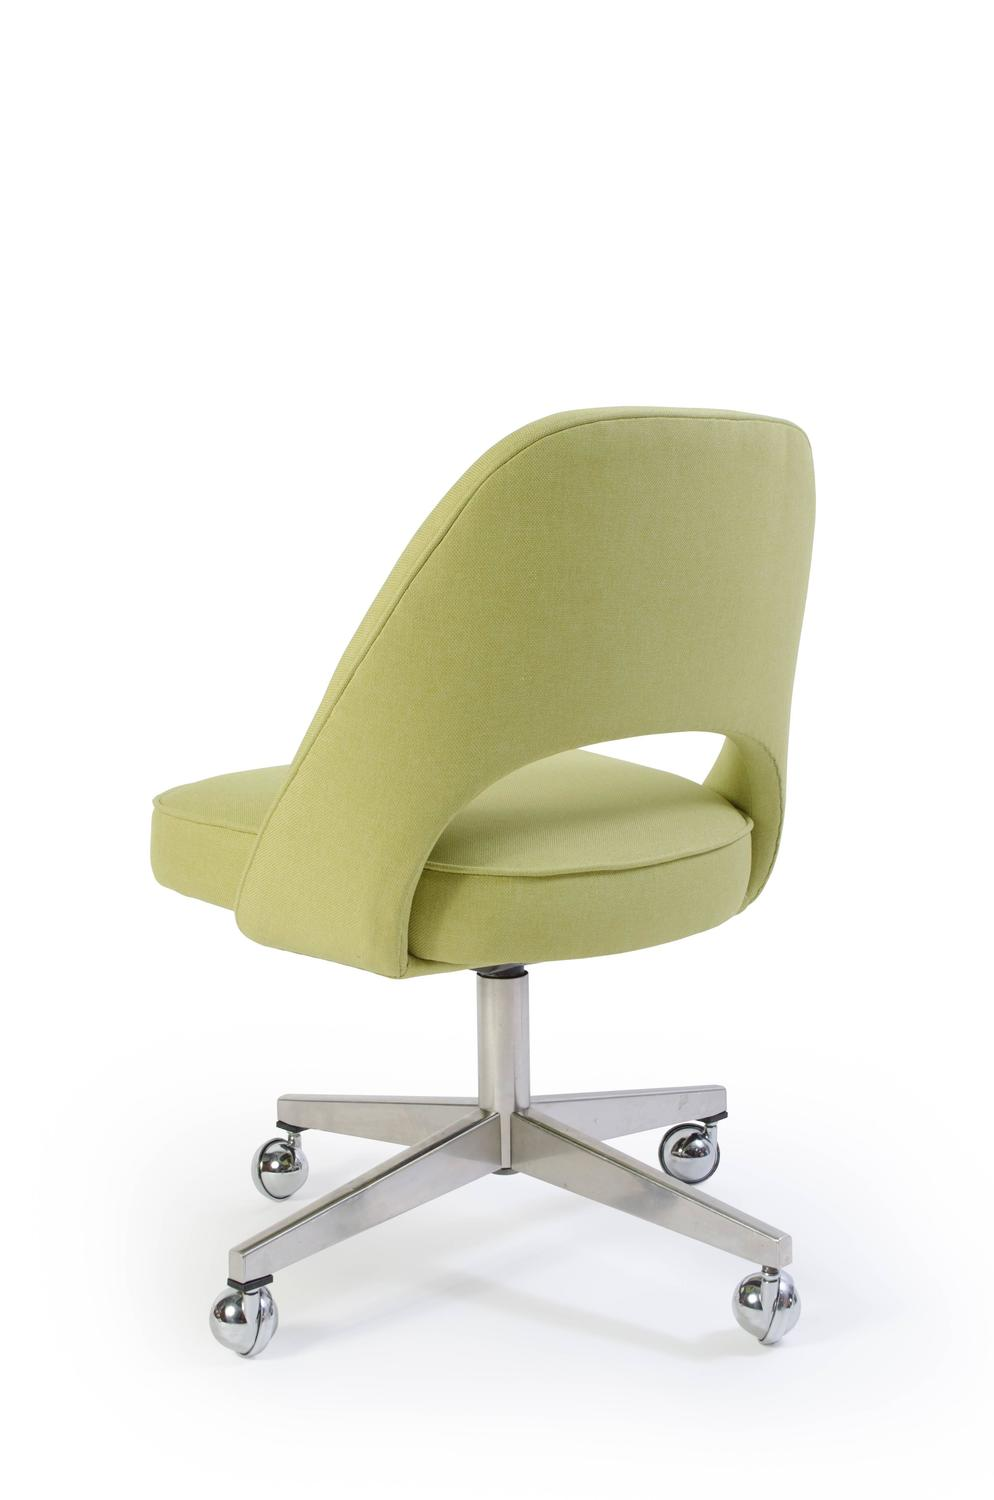 Saarinen Executive Armless Chair With Swivel Base In Green For Sale At 1stdibs